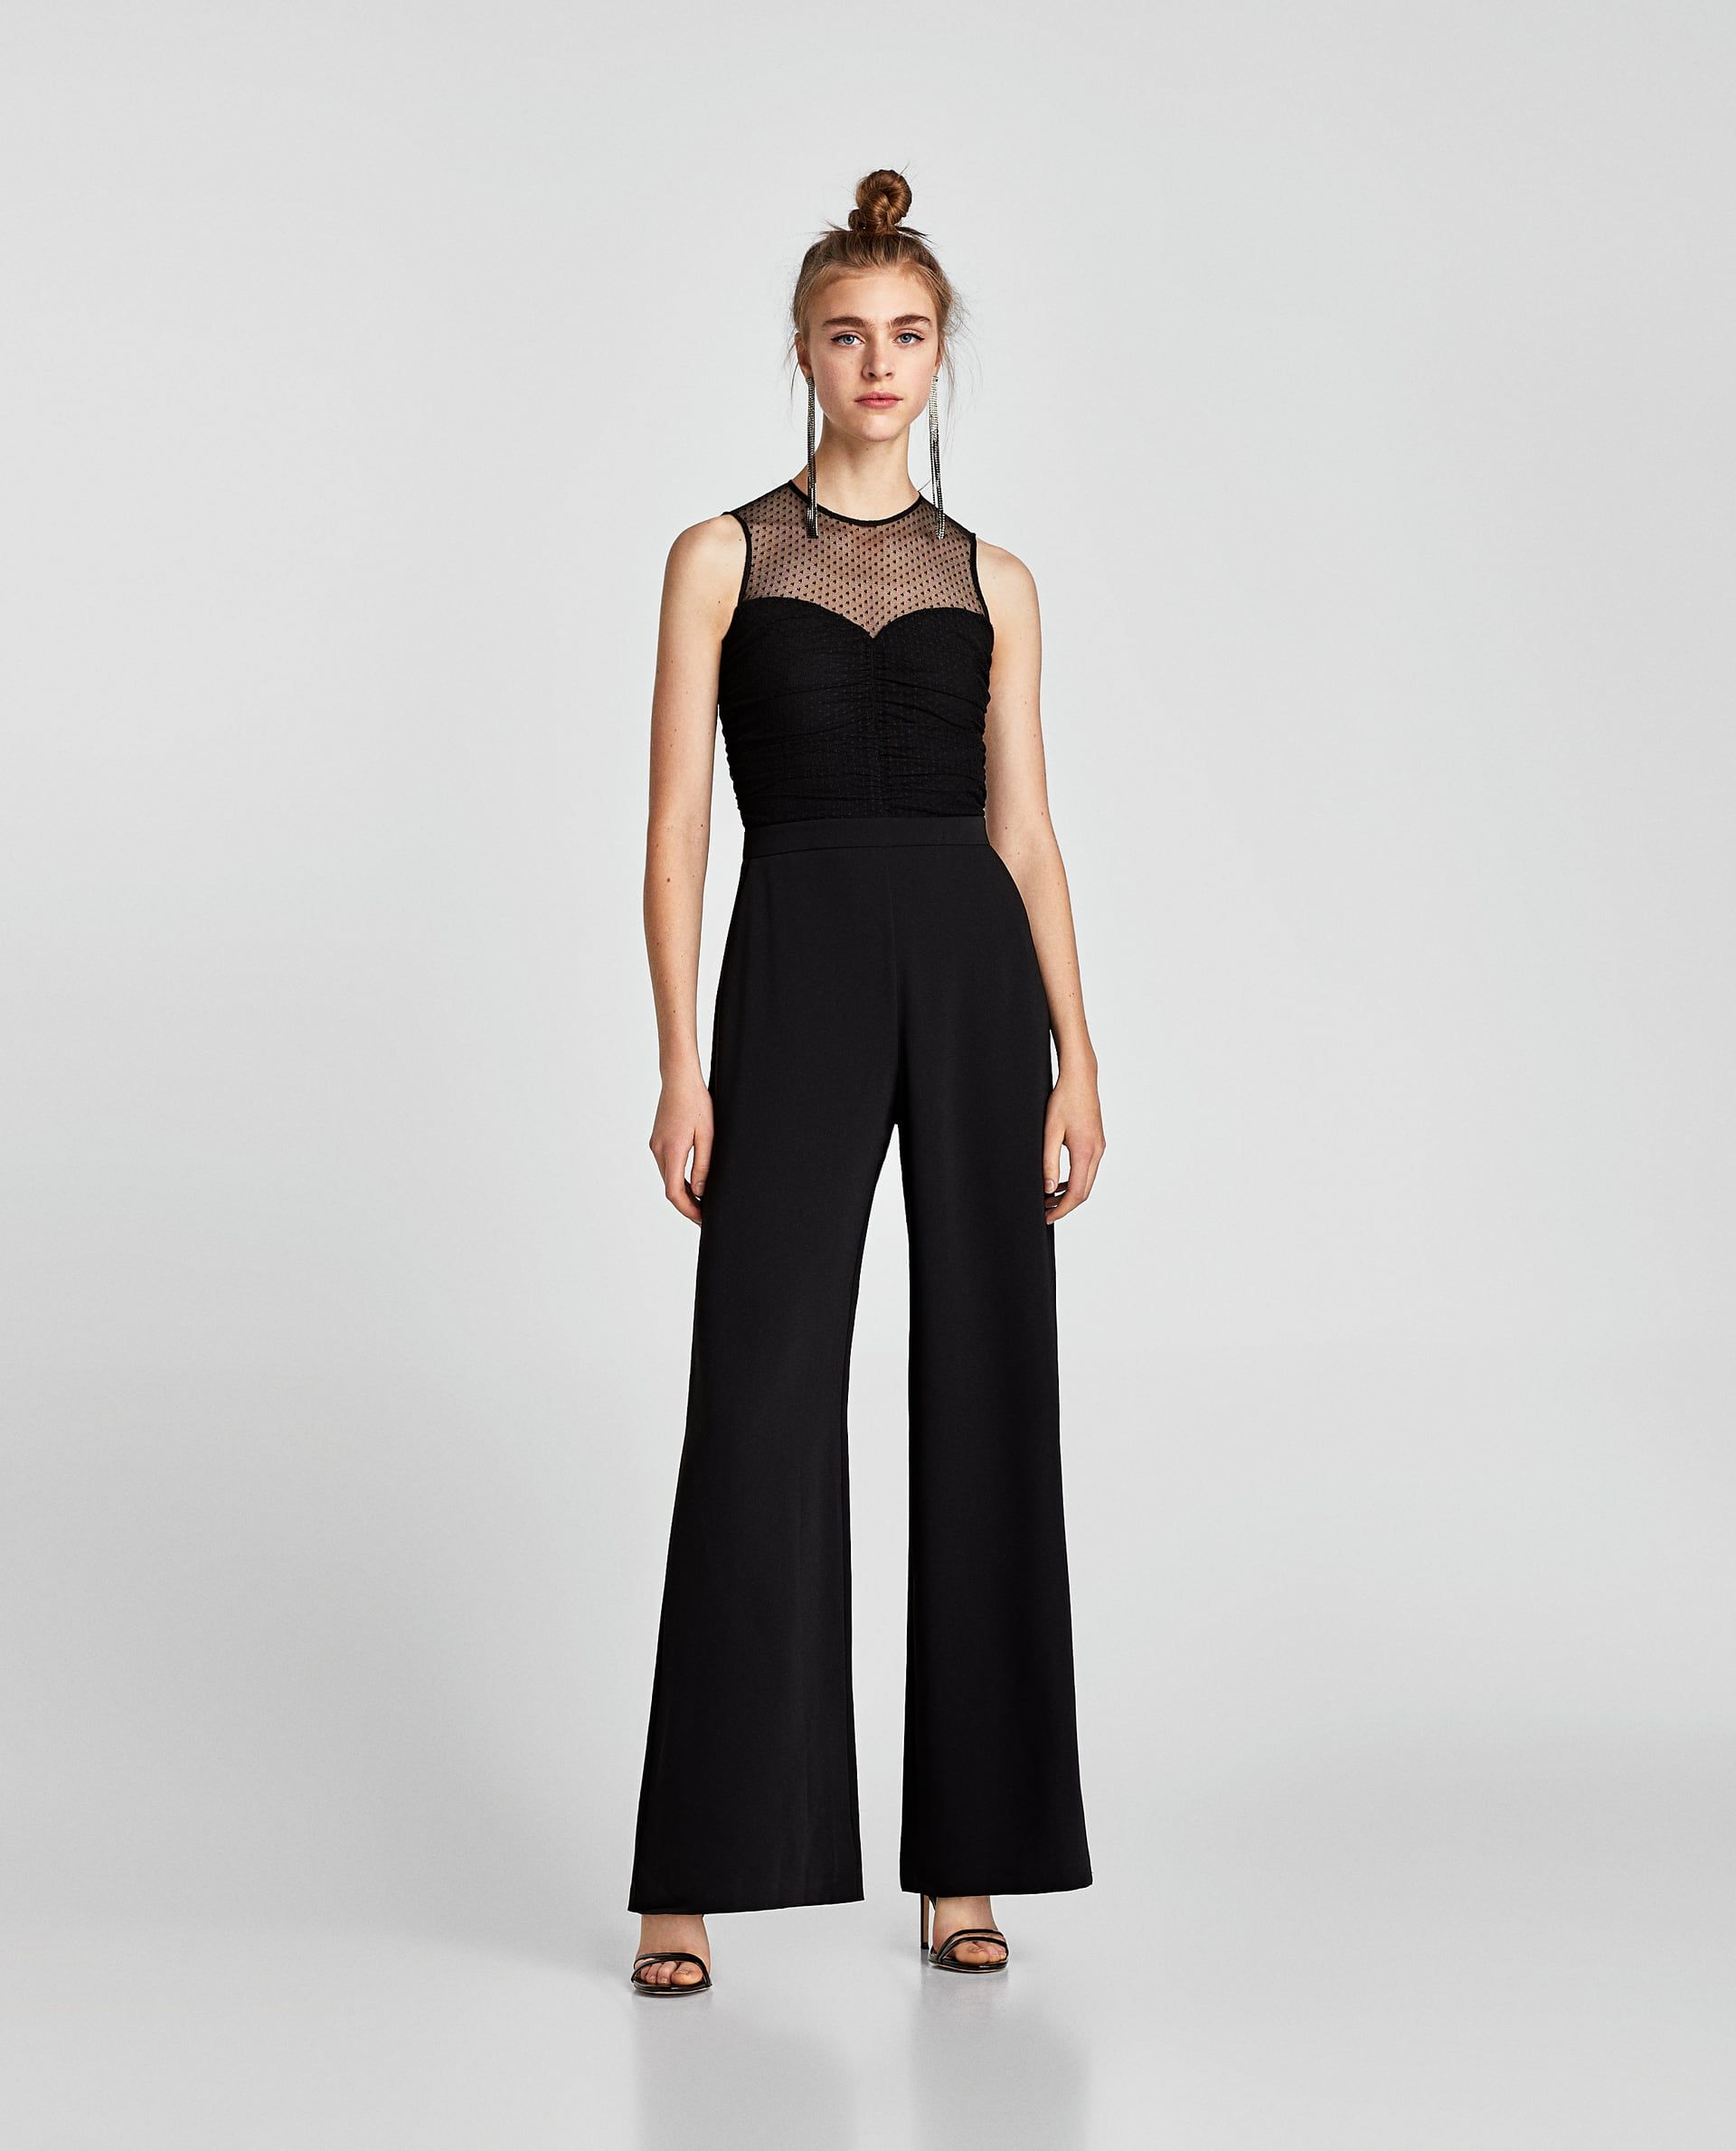 82c7b08c305 ZARA - WOMAN - CONTRASTING DRAPED JUMPSUIT